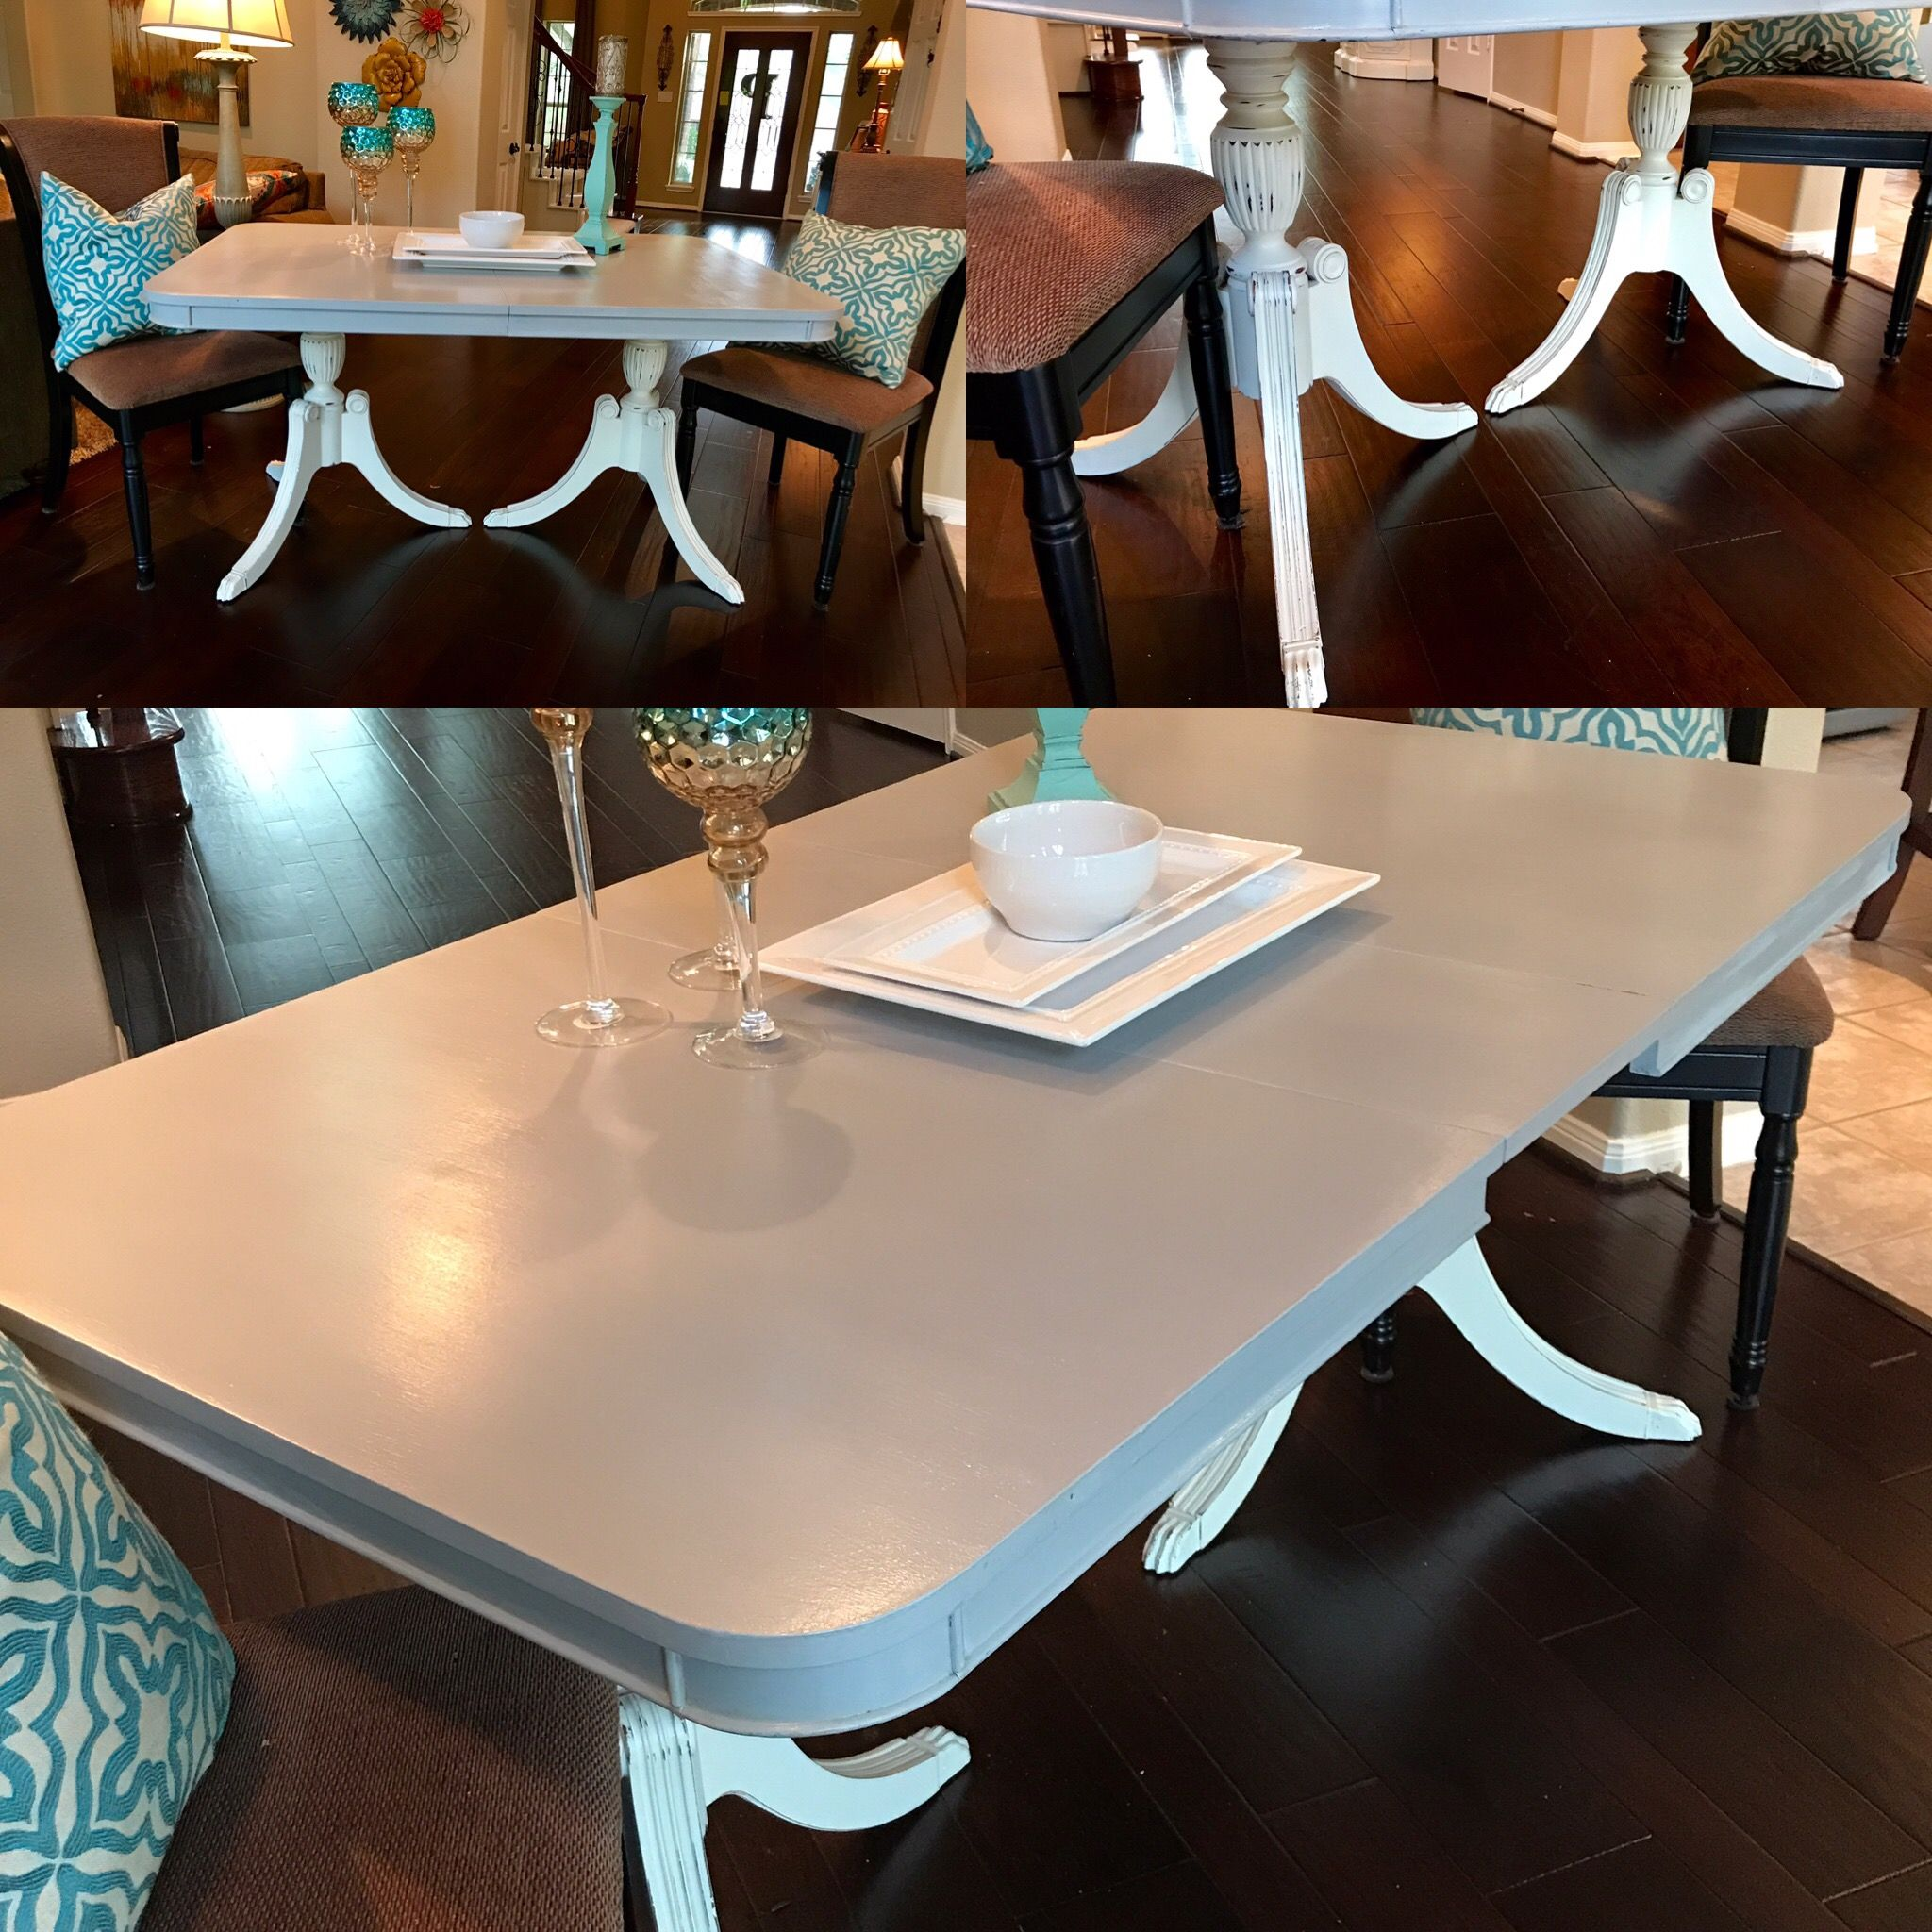 Duncan Phyfe Dining Table In Paris Grey On Top And Old